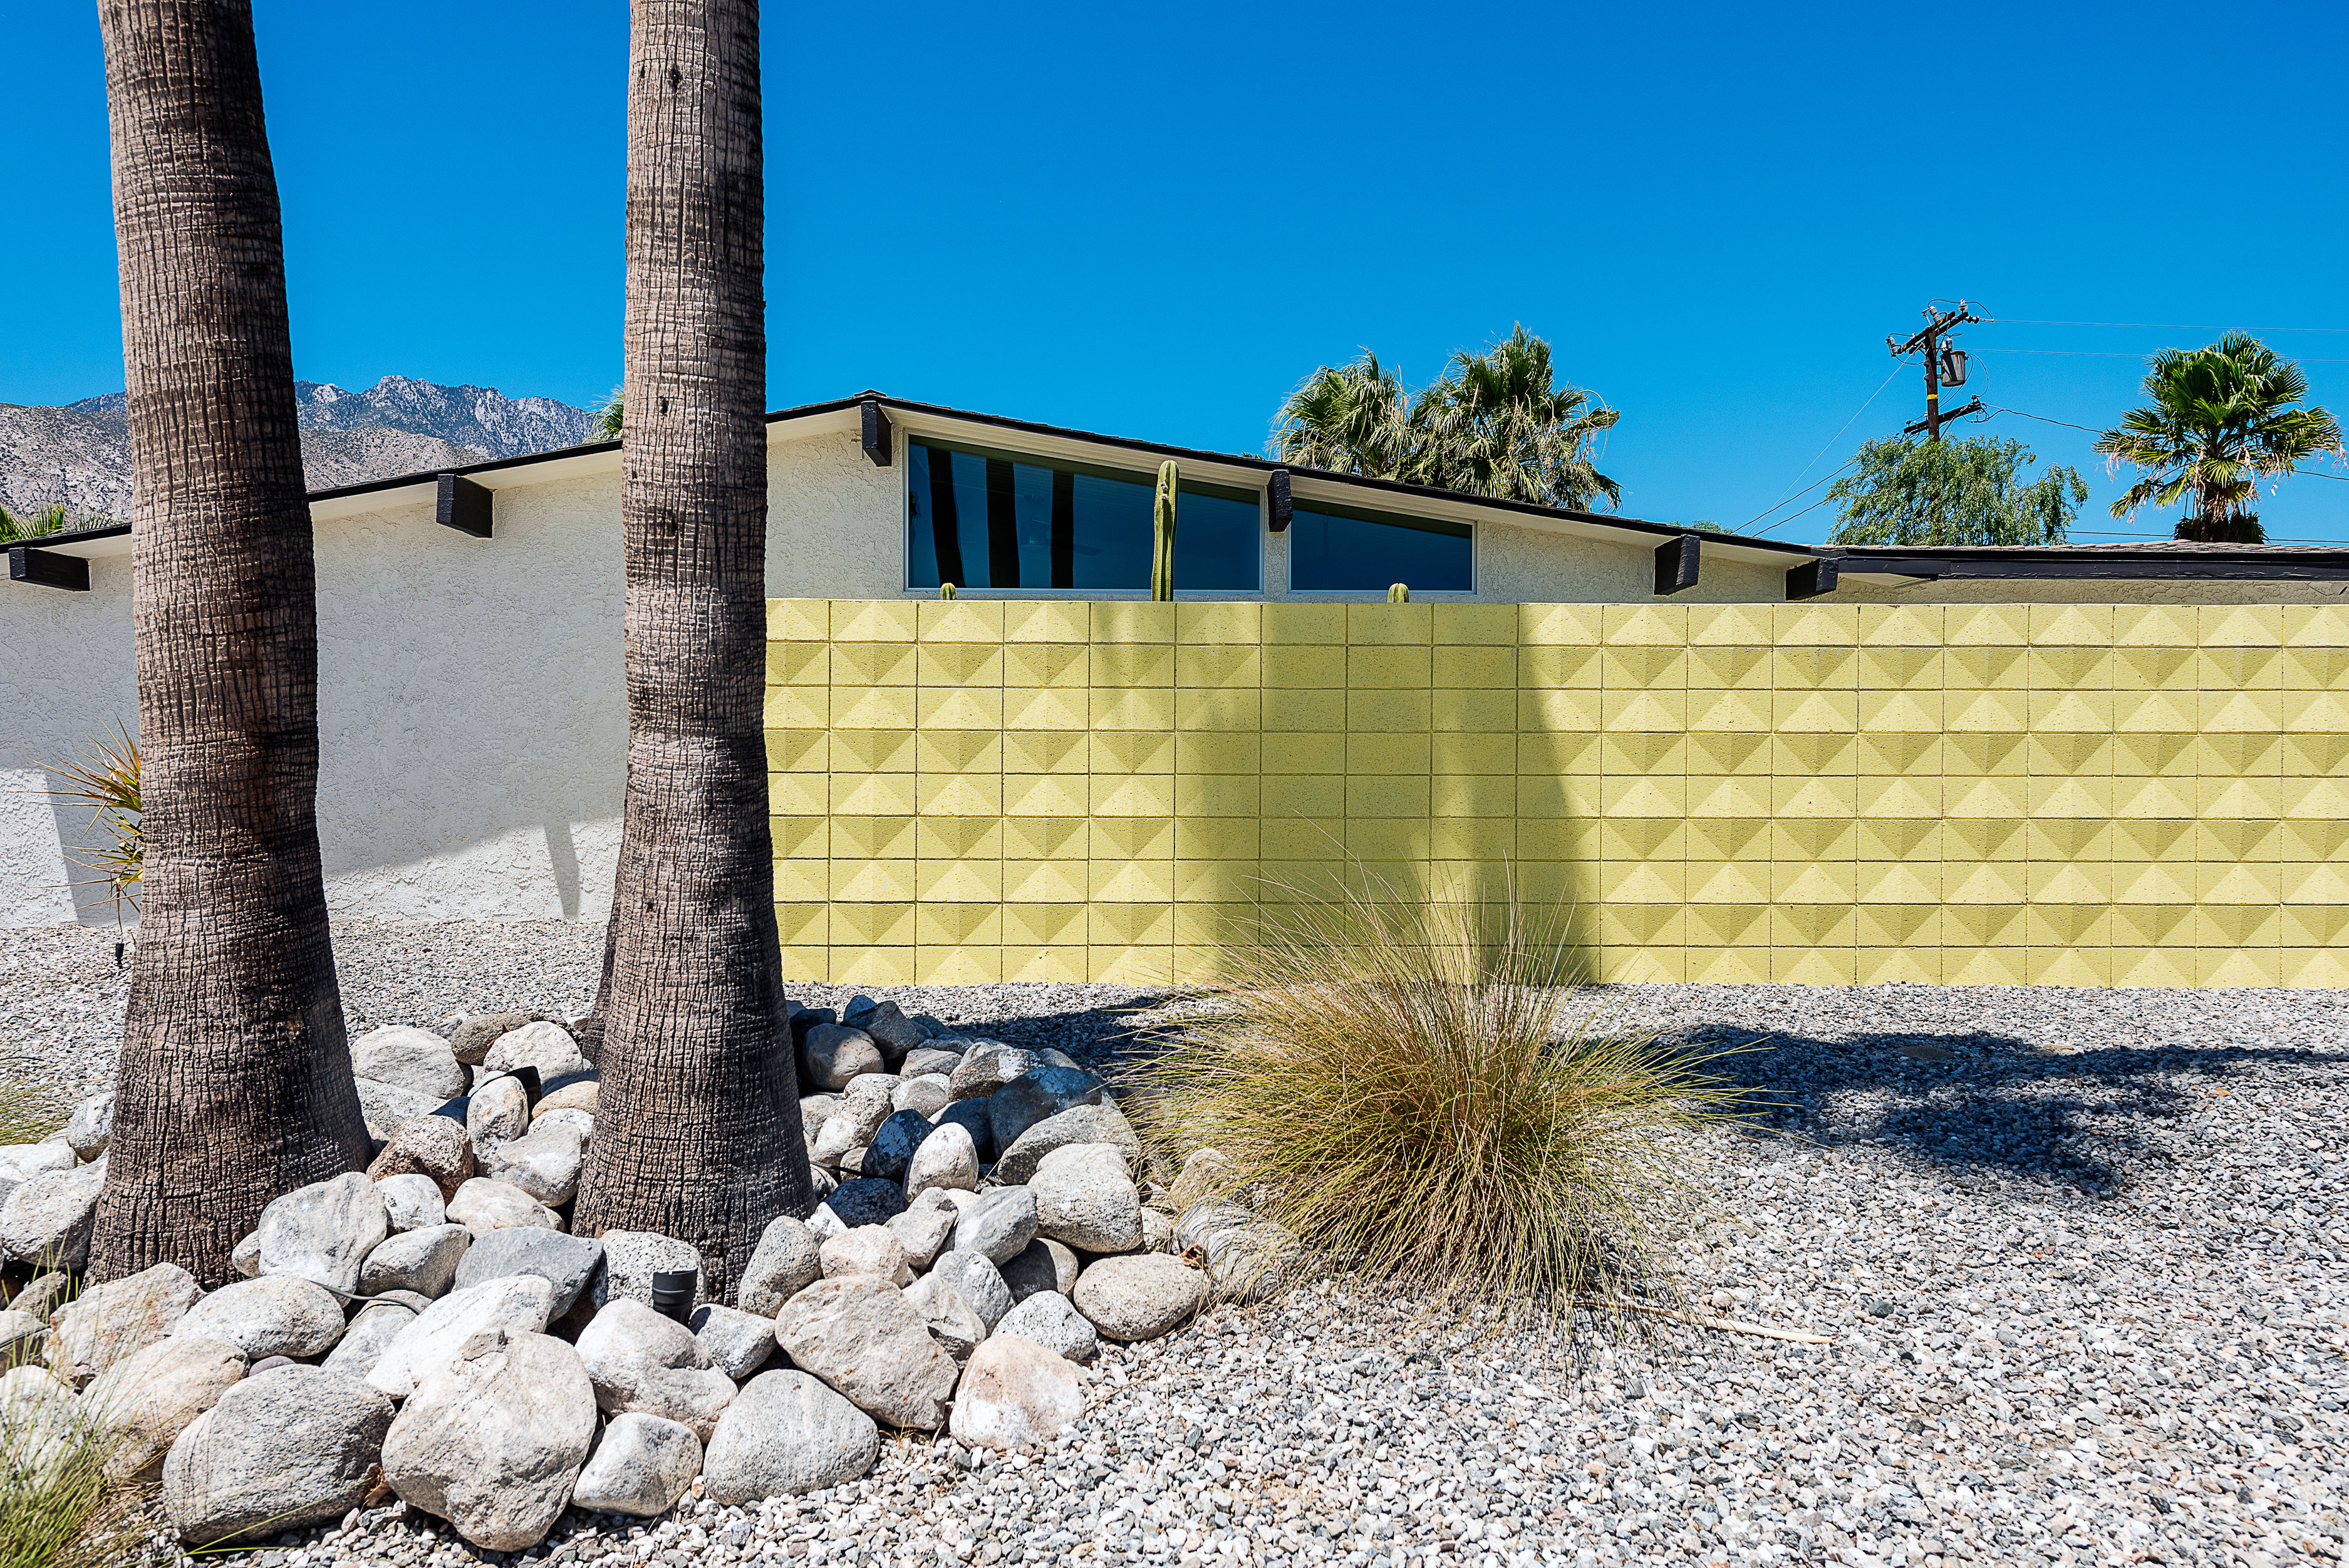 An exterior view of a midcentury modern house with a yellow wall in front. There are also two palm trees and blue skies in the background.